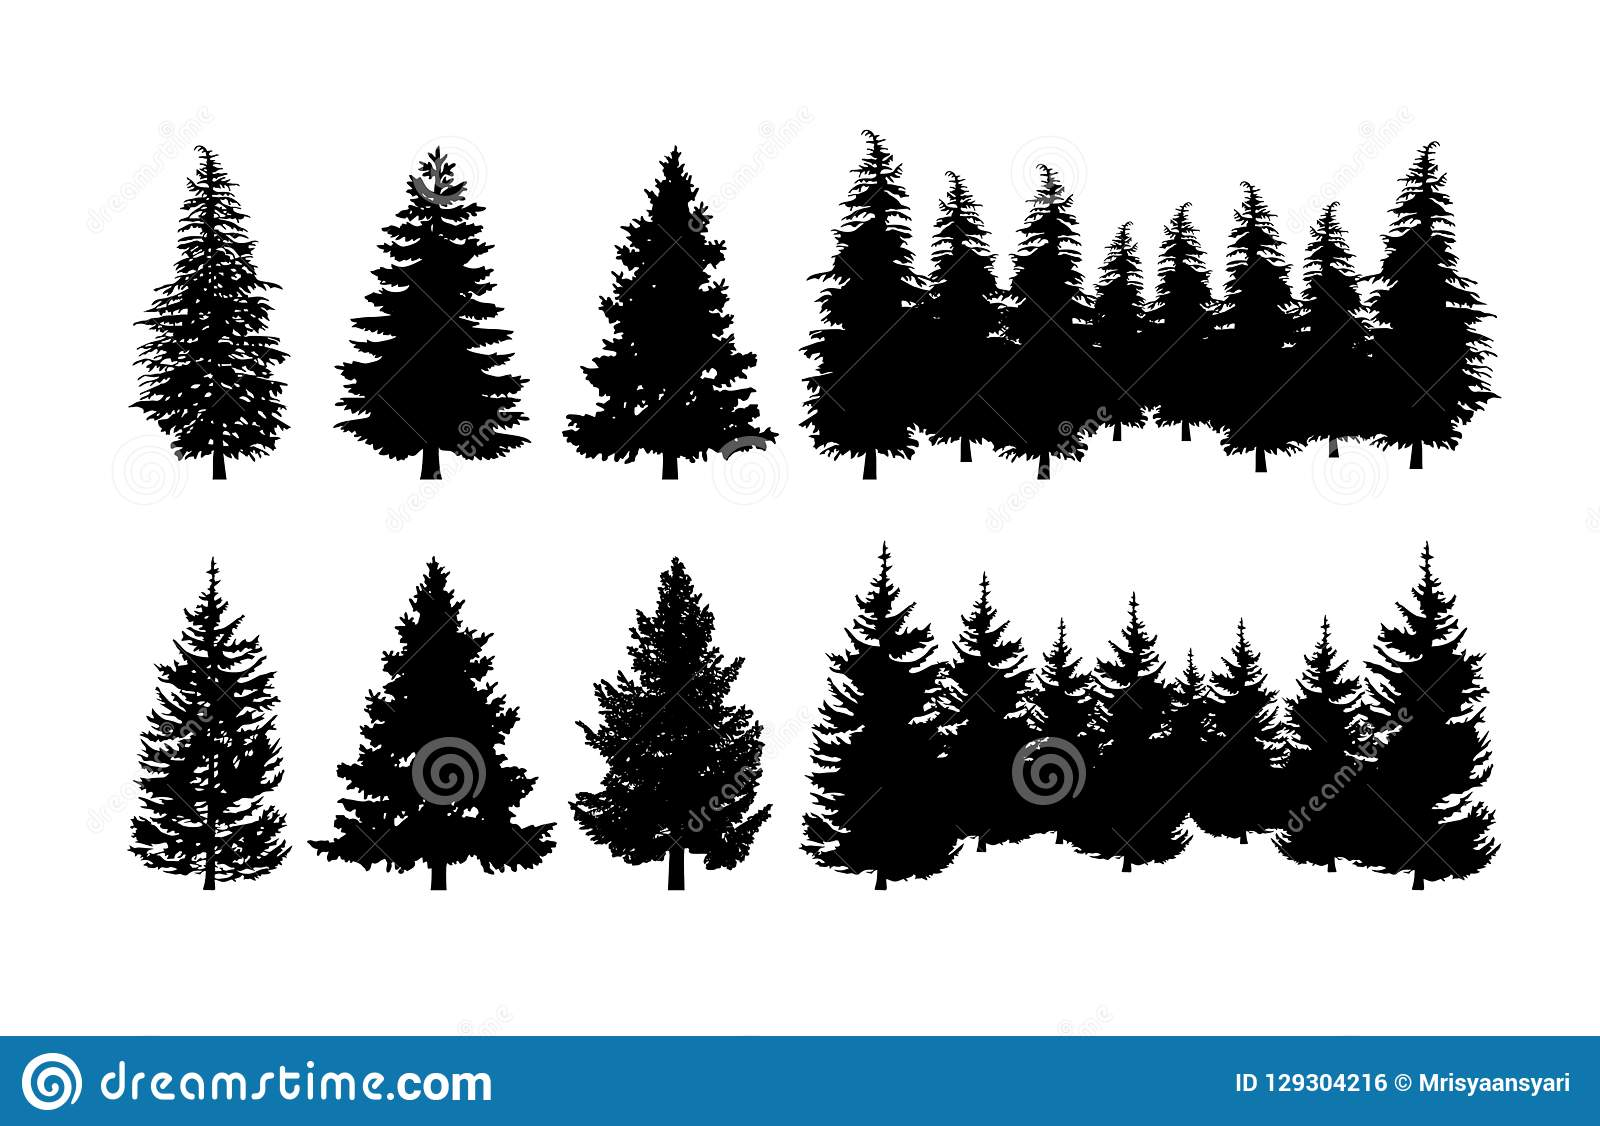 hight resolution of concept design a illustration vector of pine tree vector clip art isolated on white background